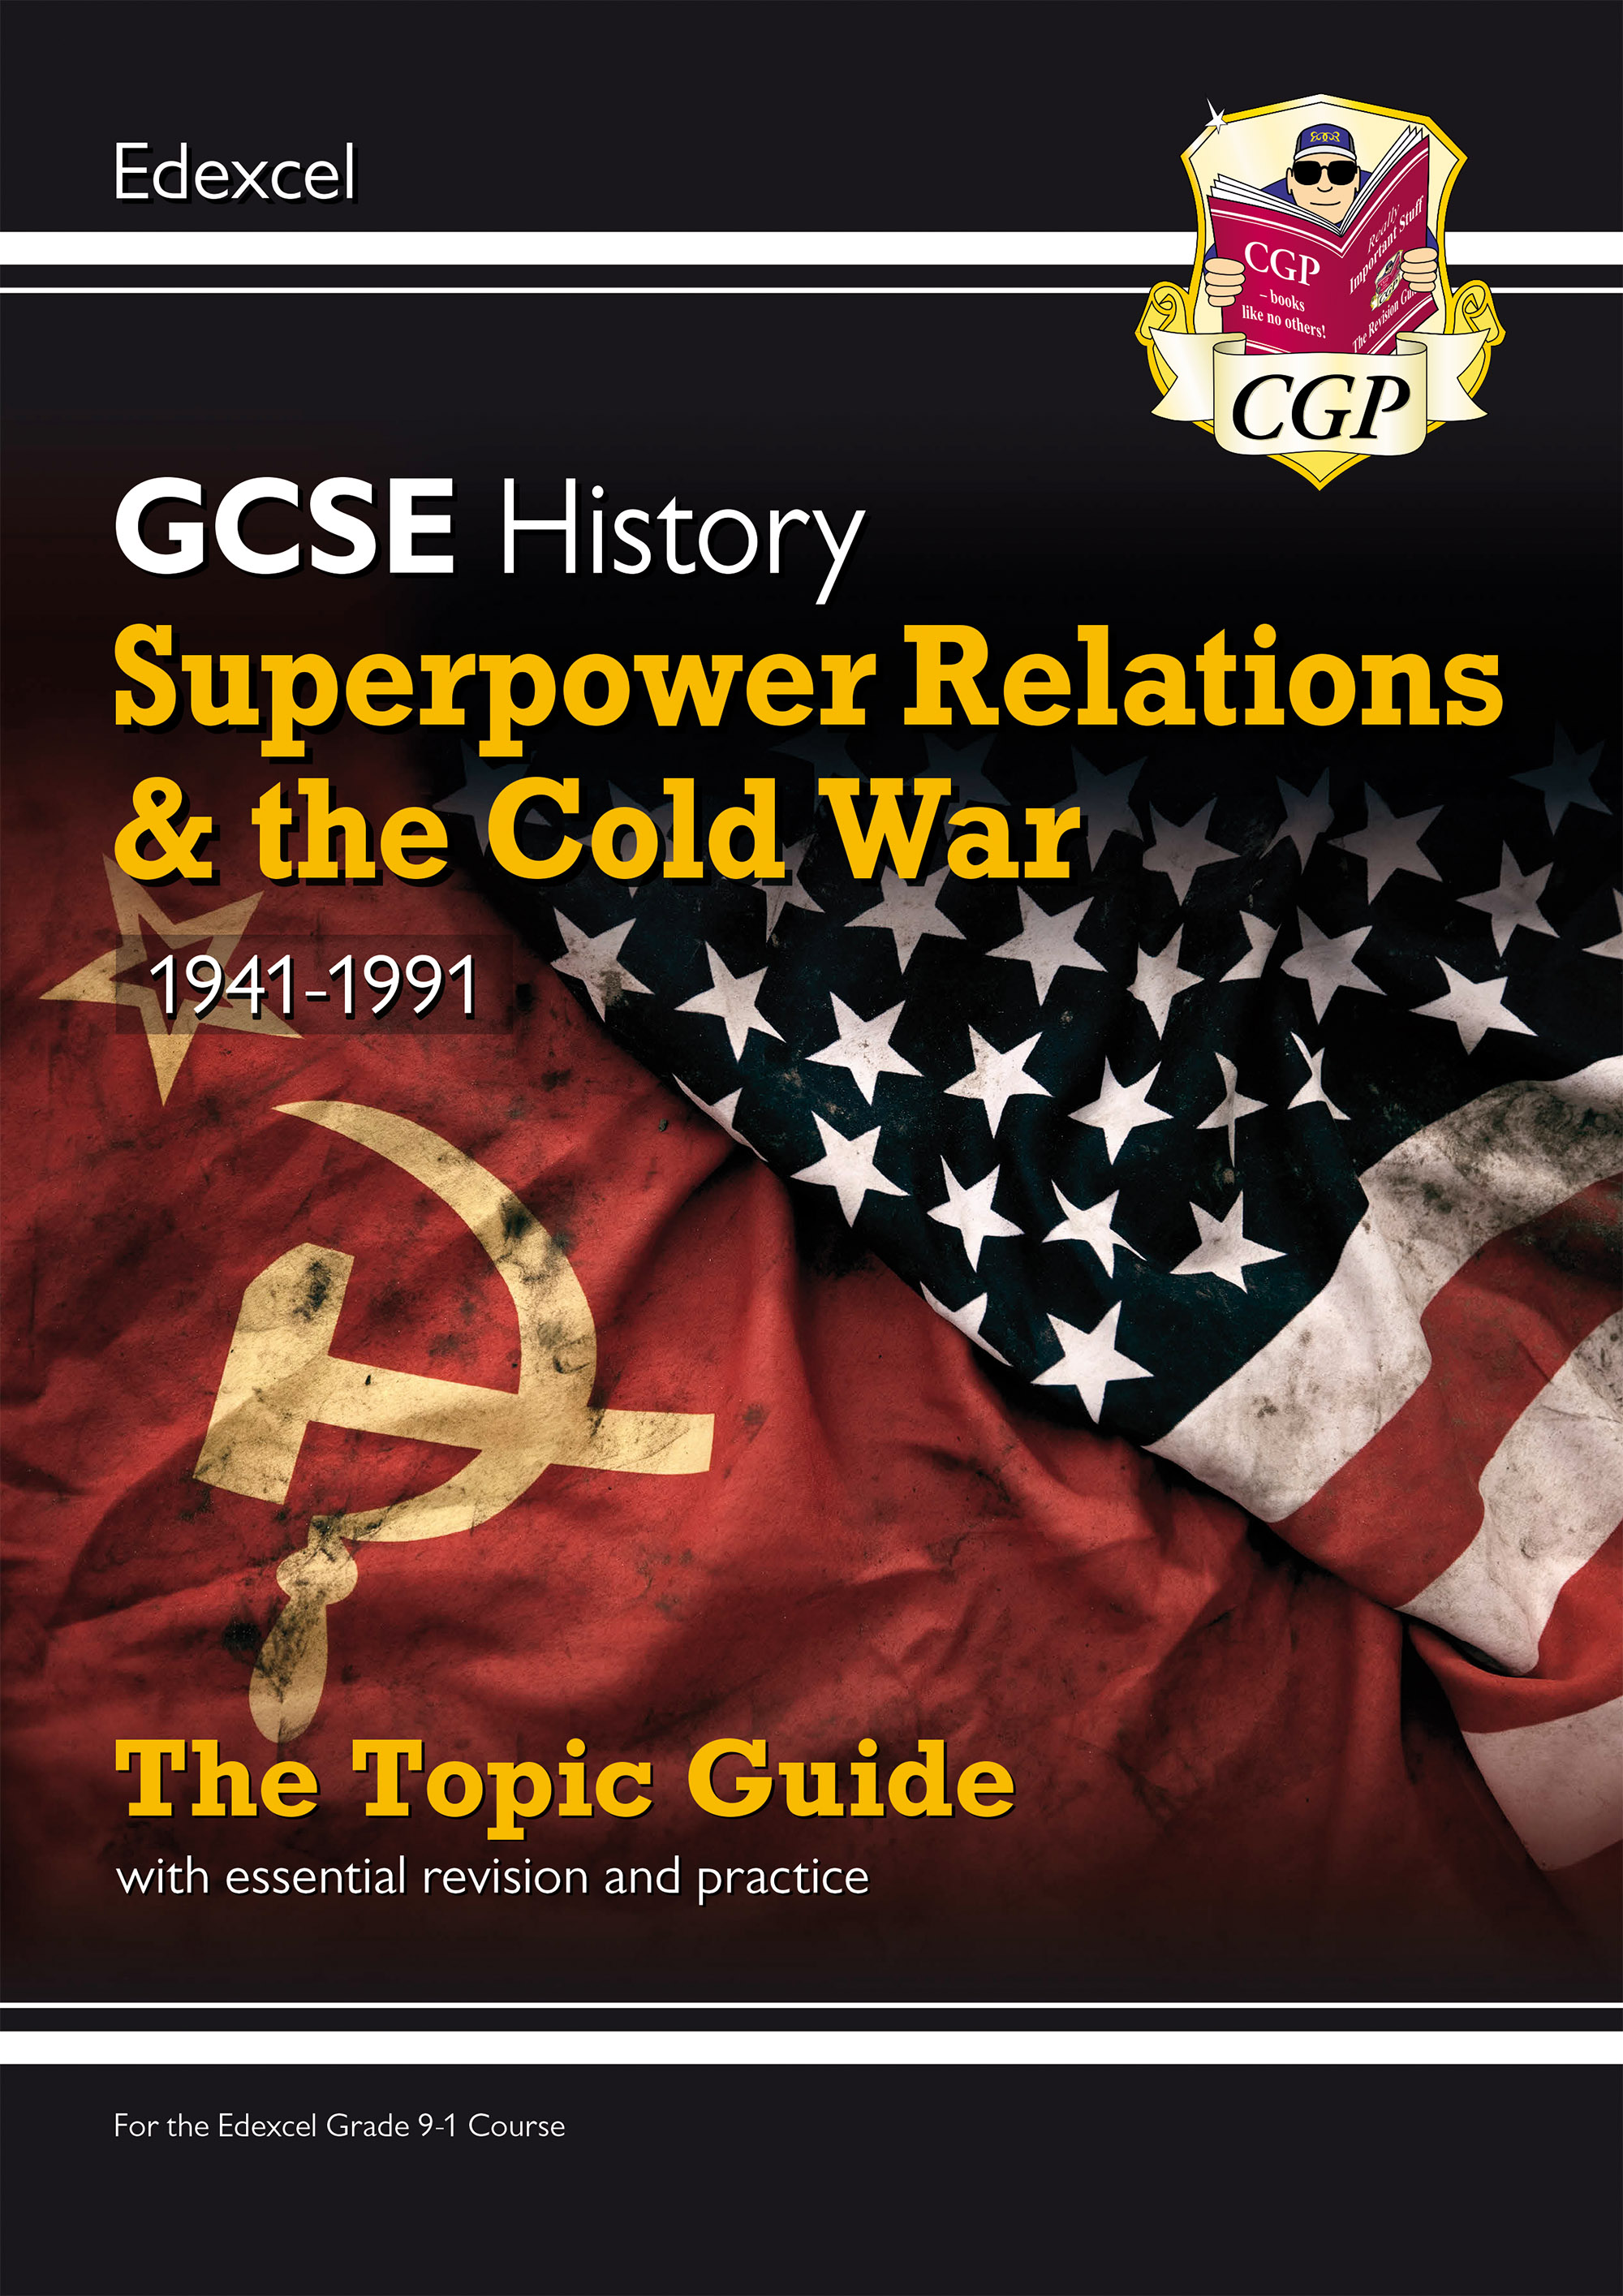 HECWO41DK - New Grade 9-1 GCSE History Edexcel Topic Guide - Superpower Relations and the Cold War,